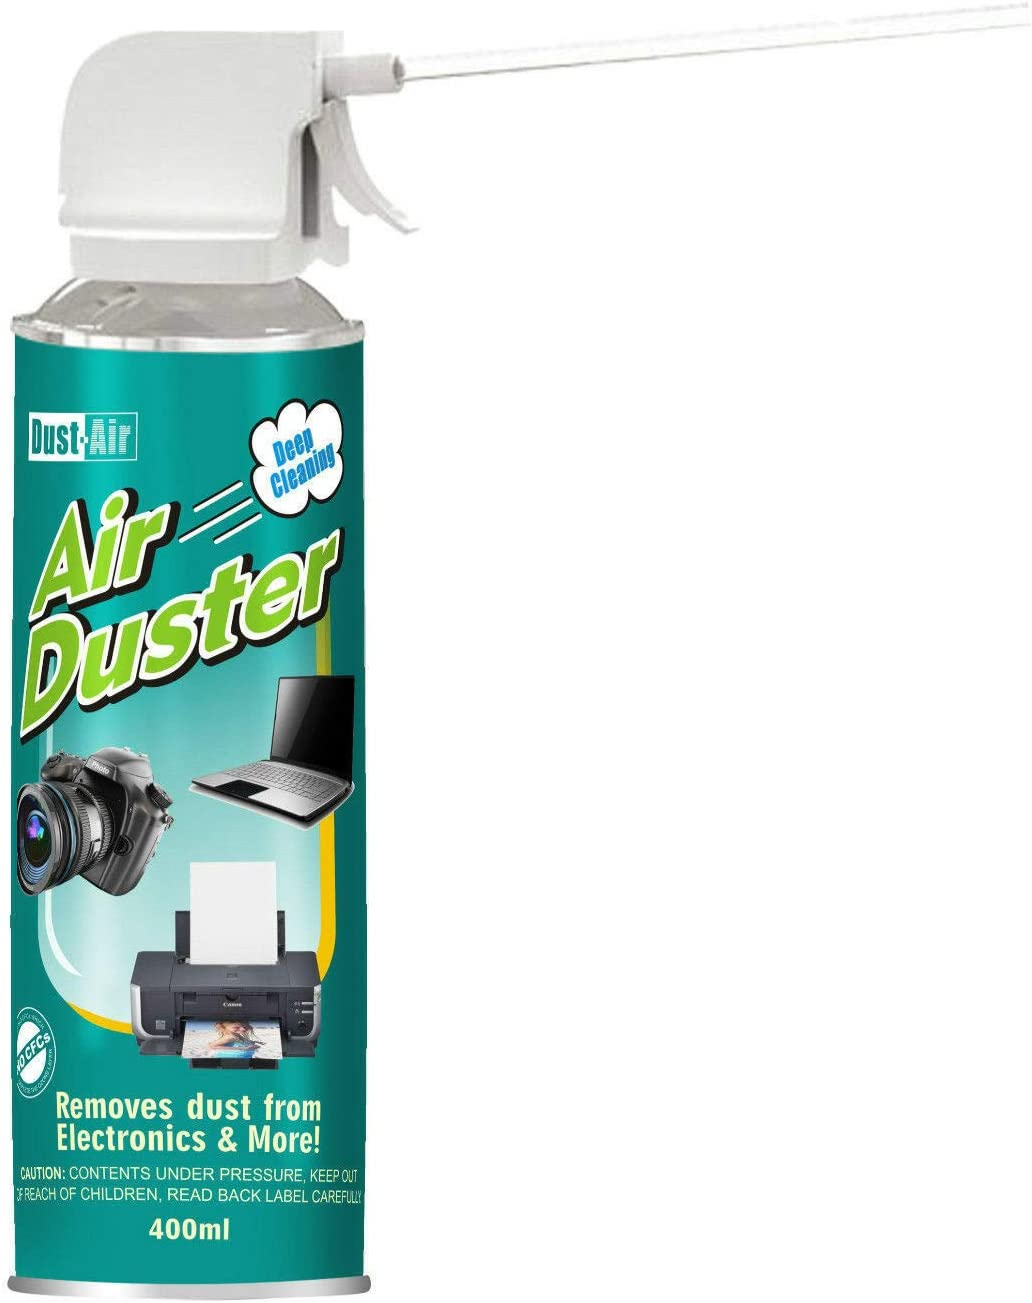 4 x Dust-Air 400ml Compressed Air Duster Can for Fans PC Laptop Camera CFC  Free 4X: Amazon.co.uk: Office Products